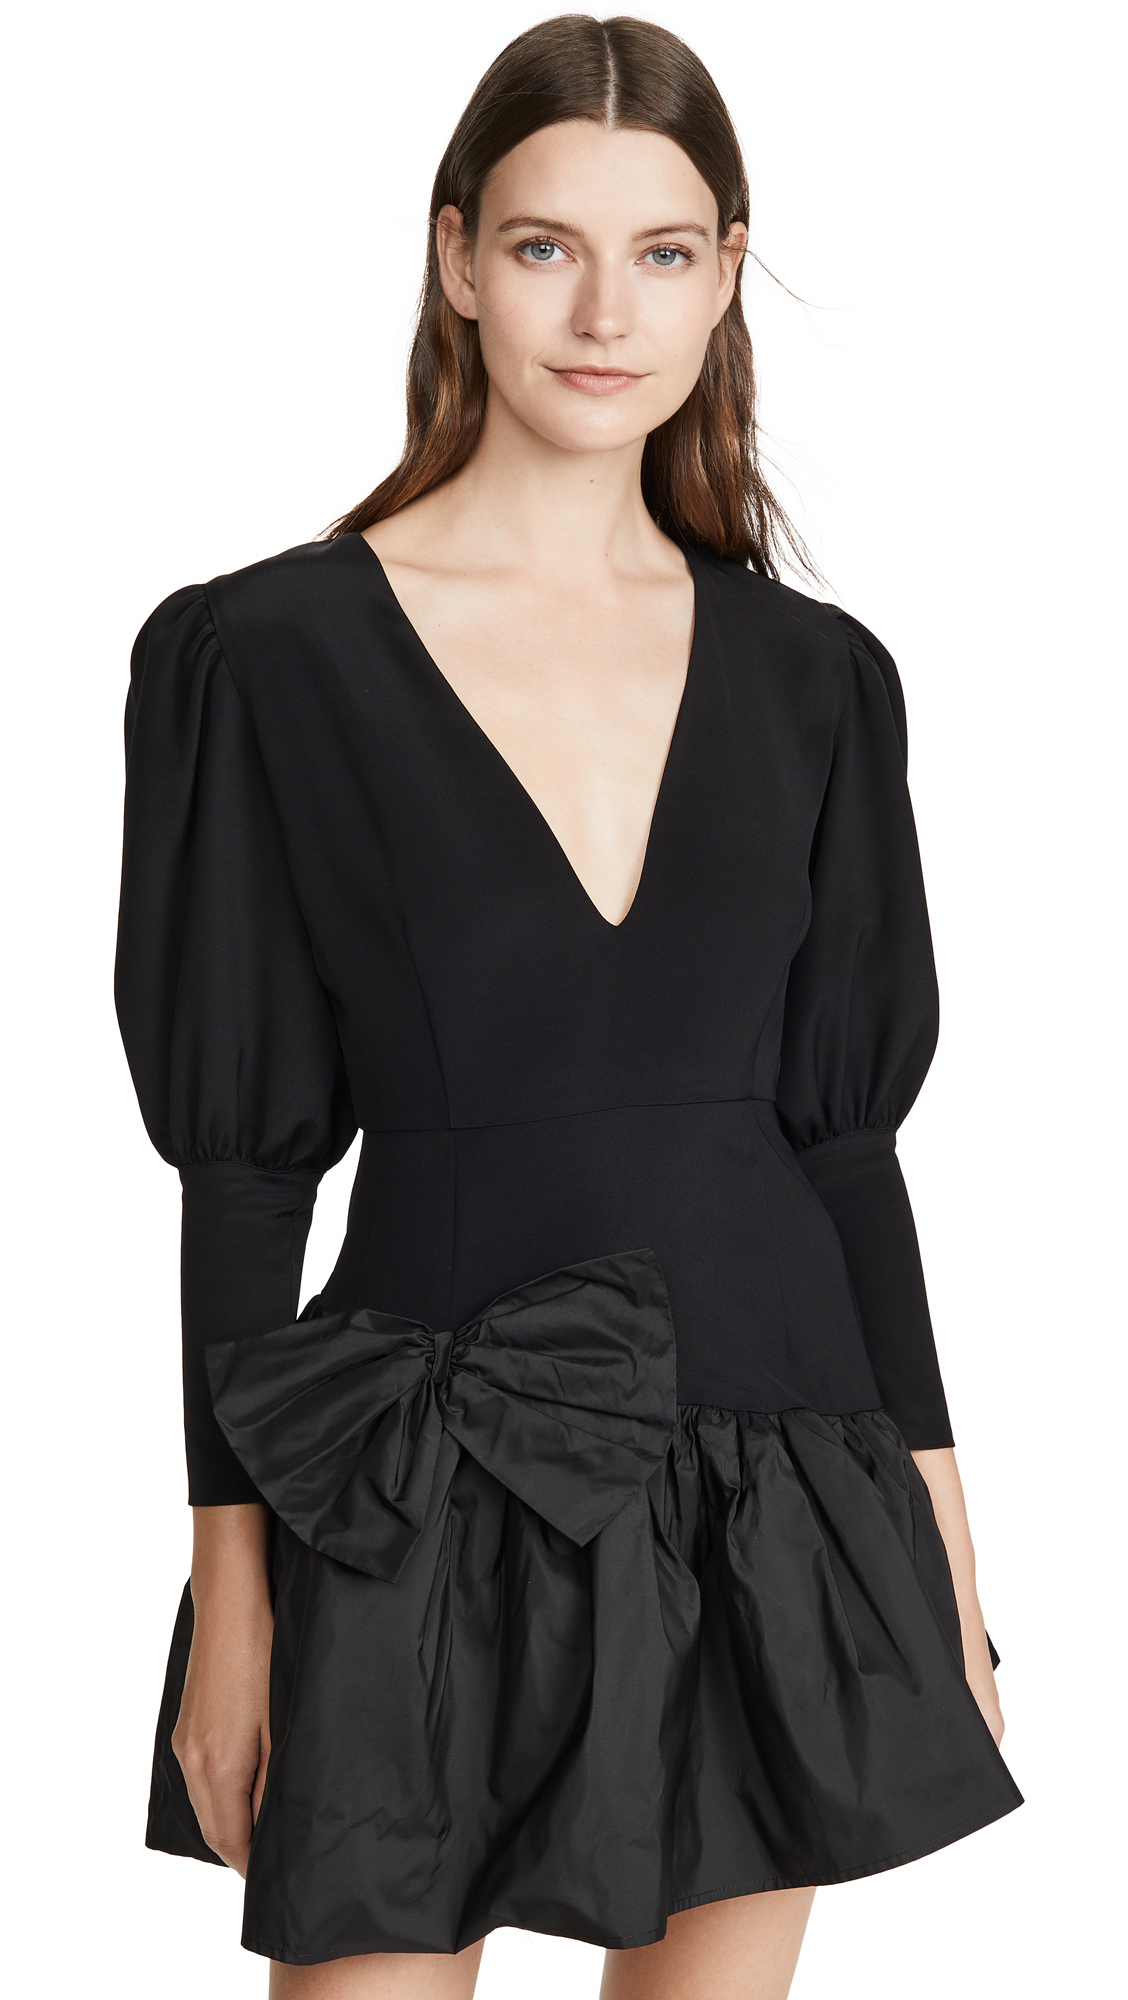 Viva Aviva Nicole V Neck Puff Sleeve Dress - 30% Off Sale